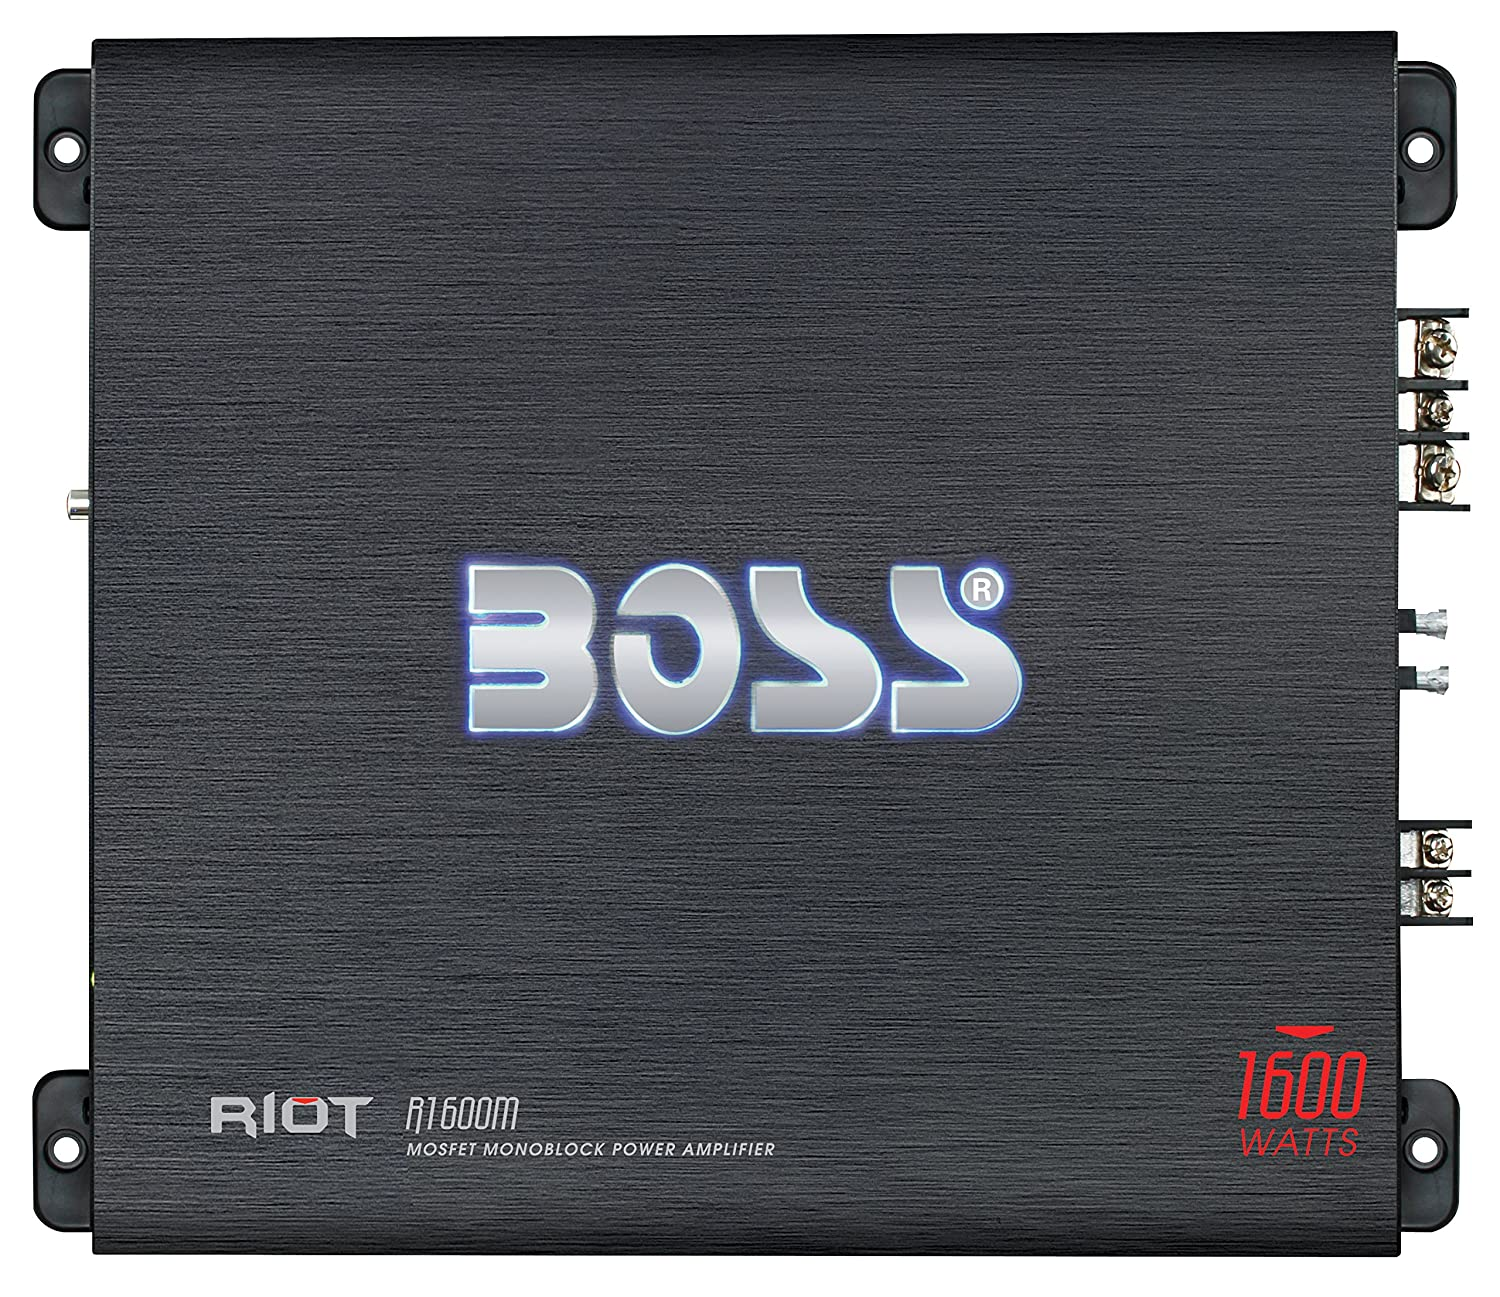 Boss Audio Systems R1600M - Amplificador de audio (1.0 canales, 1600 W, A/B, 0,01%, 102 dB, 1600 W): Amazon.es: Electrónica